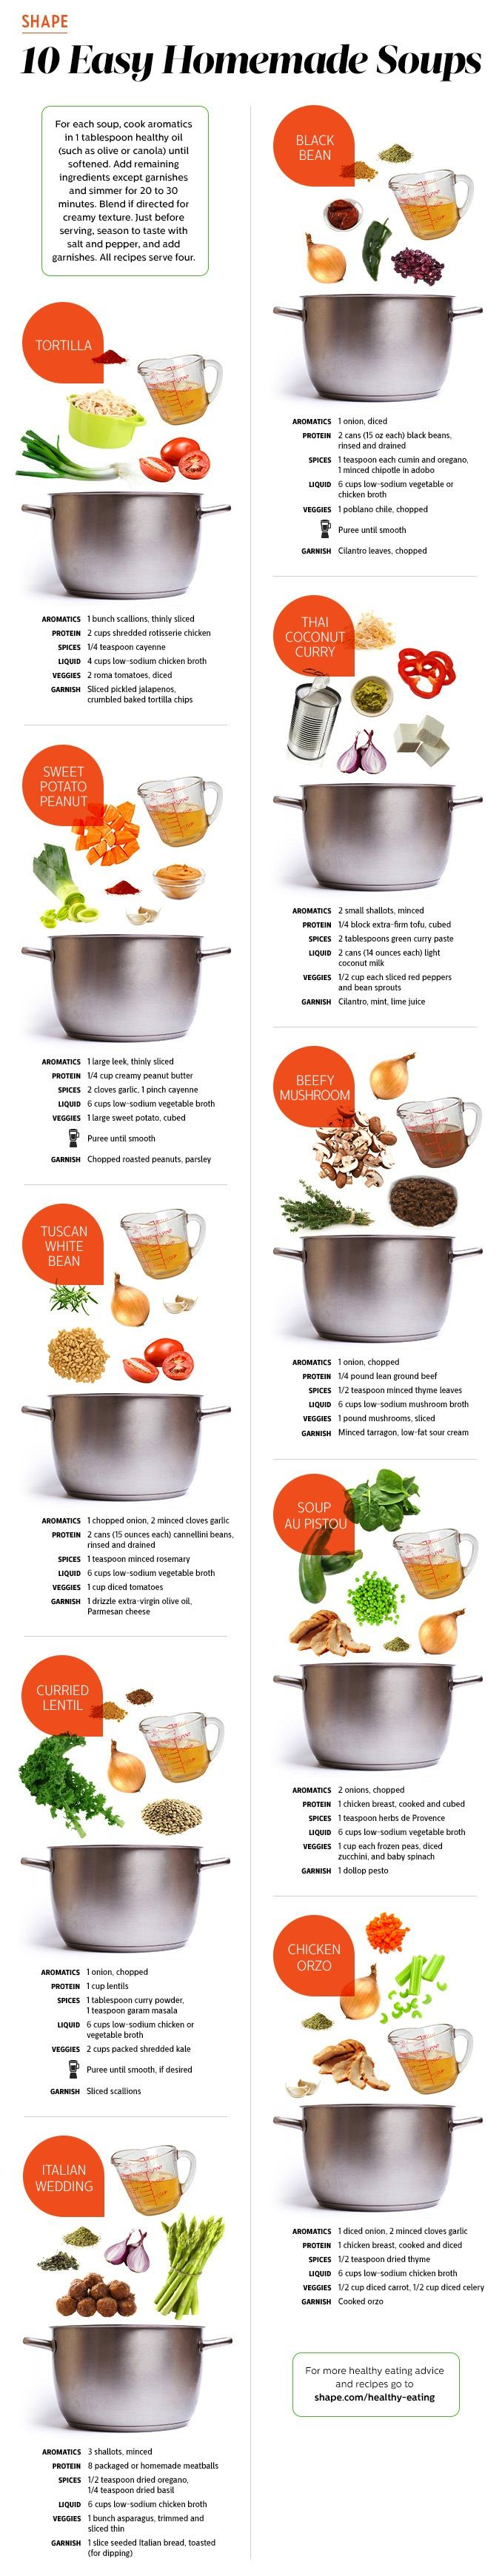 http://www.2uidea.com/category/Magic-Bullet/ 10 Easy Homemade Soups (using a Magic Bullet to smooth some of them out!)